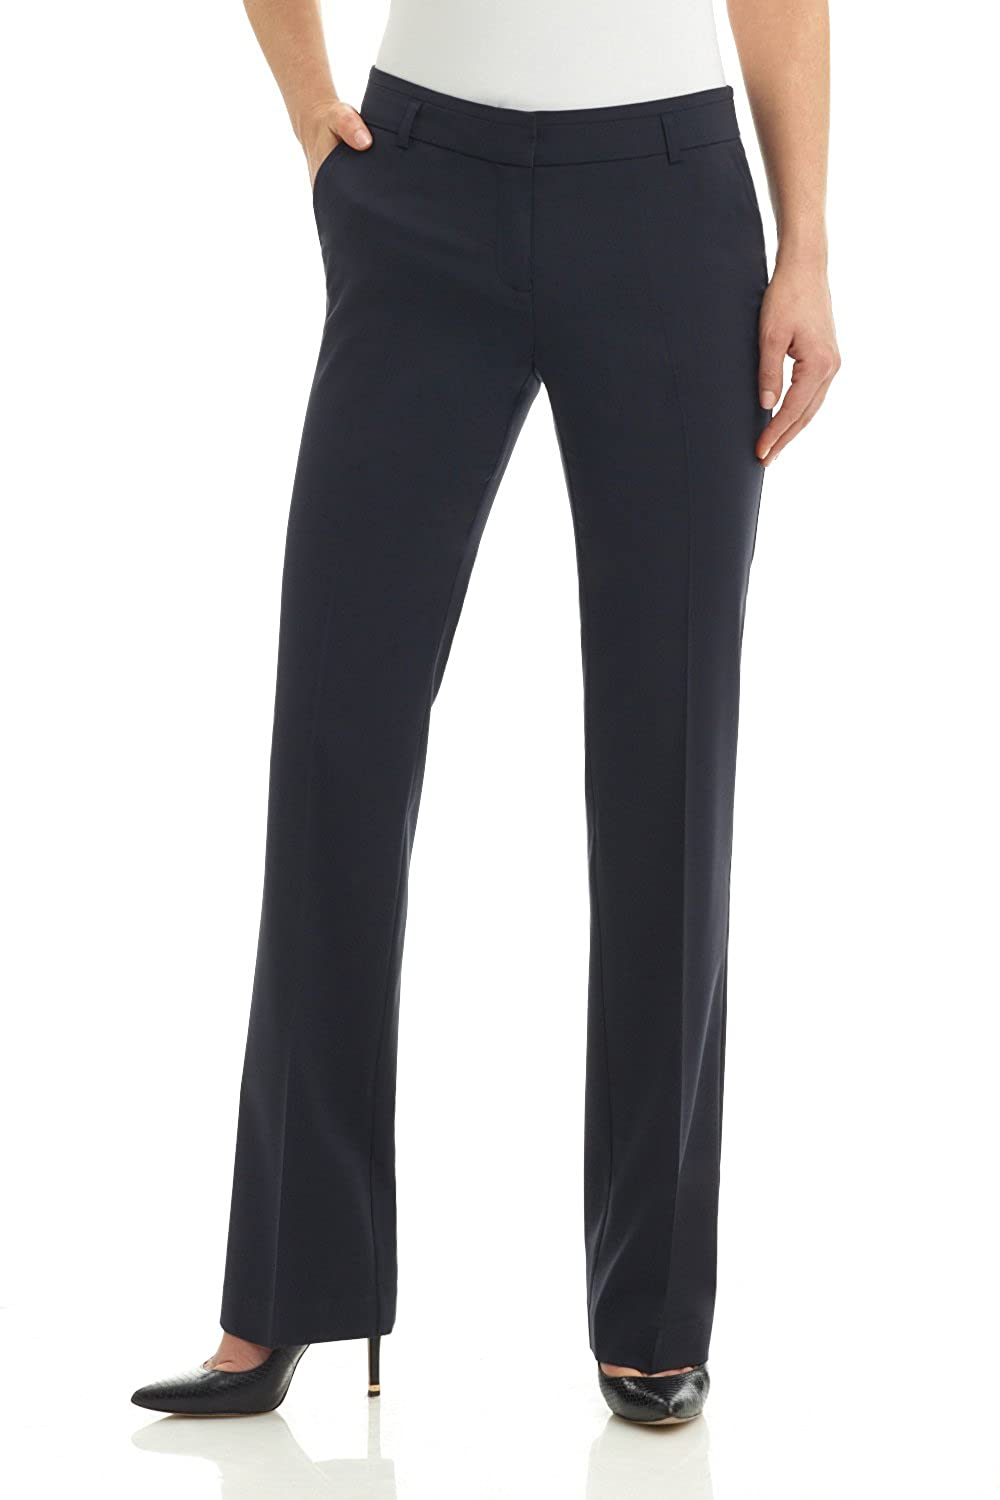 Rekucci Collection Women's Straight Leg Dress Pant with Double Loops